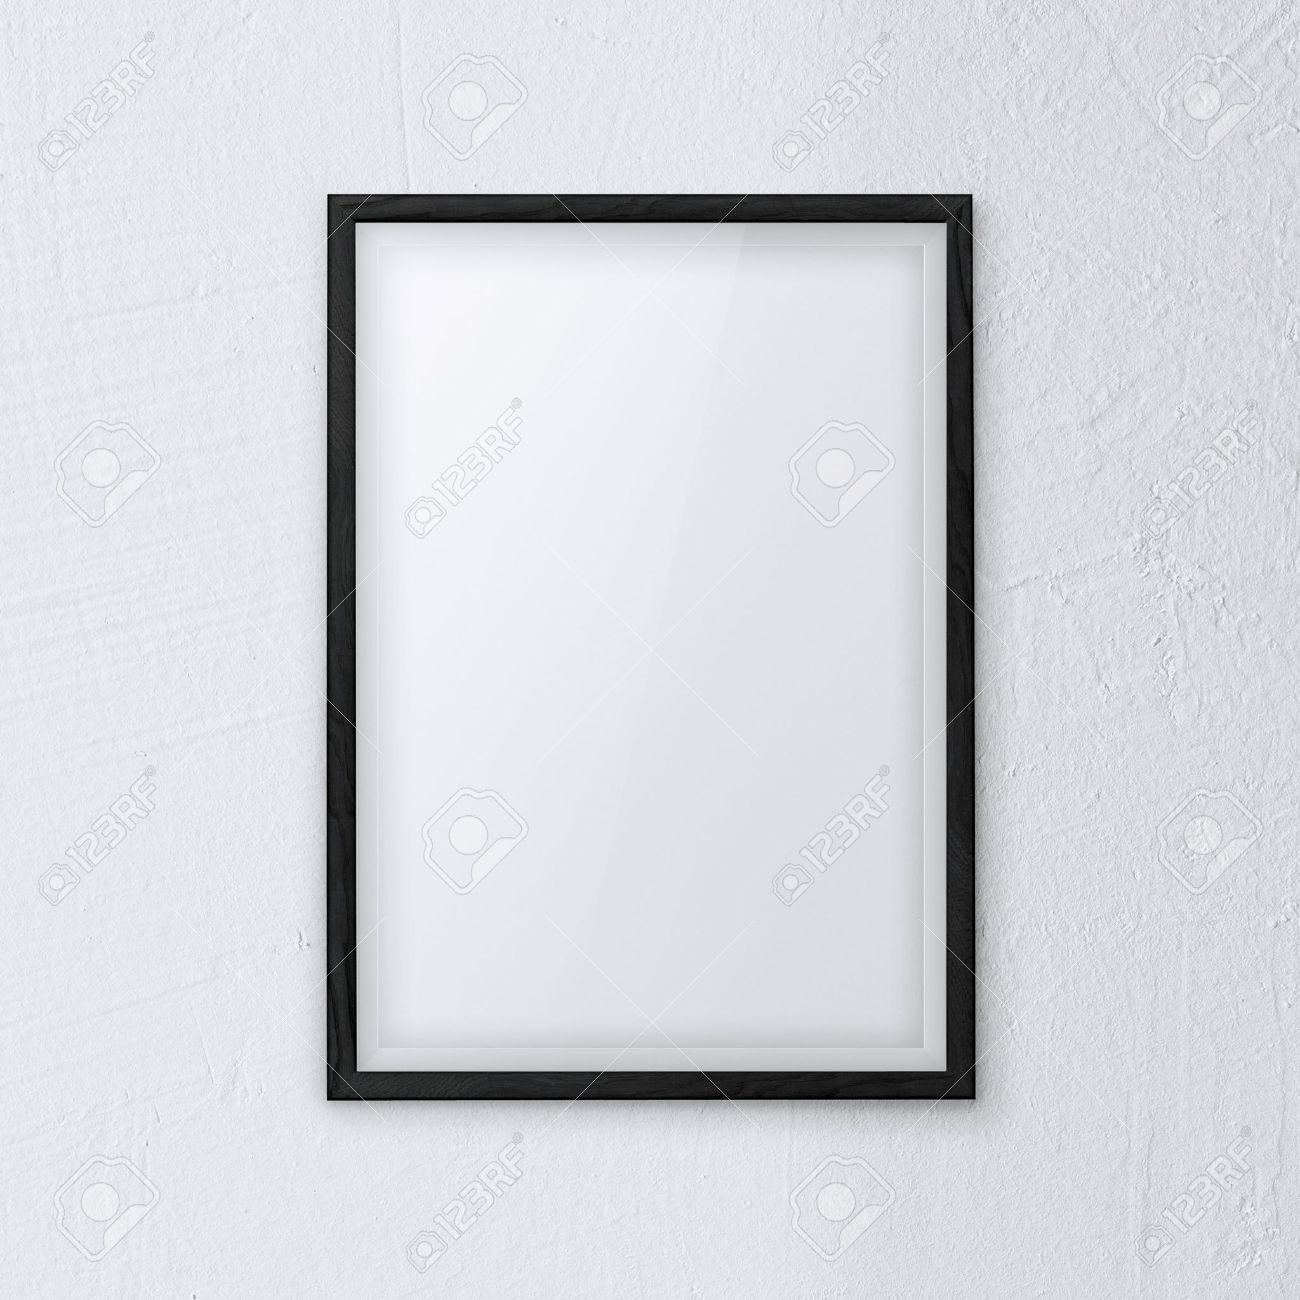 rectangle black frame. Framework Picture With Black Frame On White Wall Stock Photo - 21515439 Rectangle